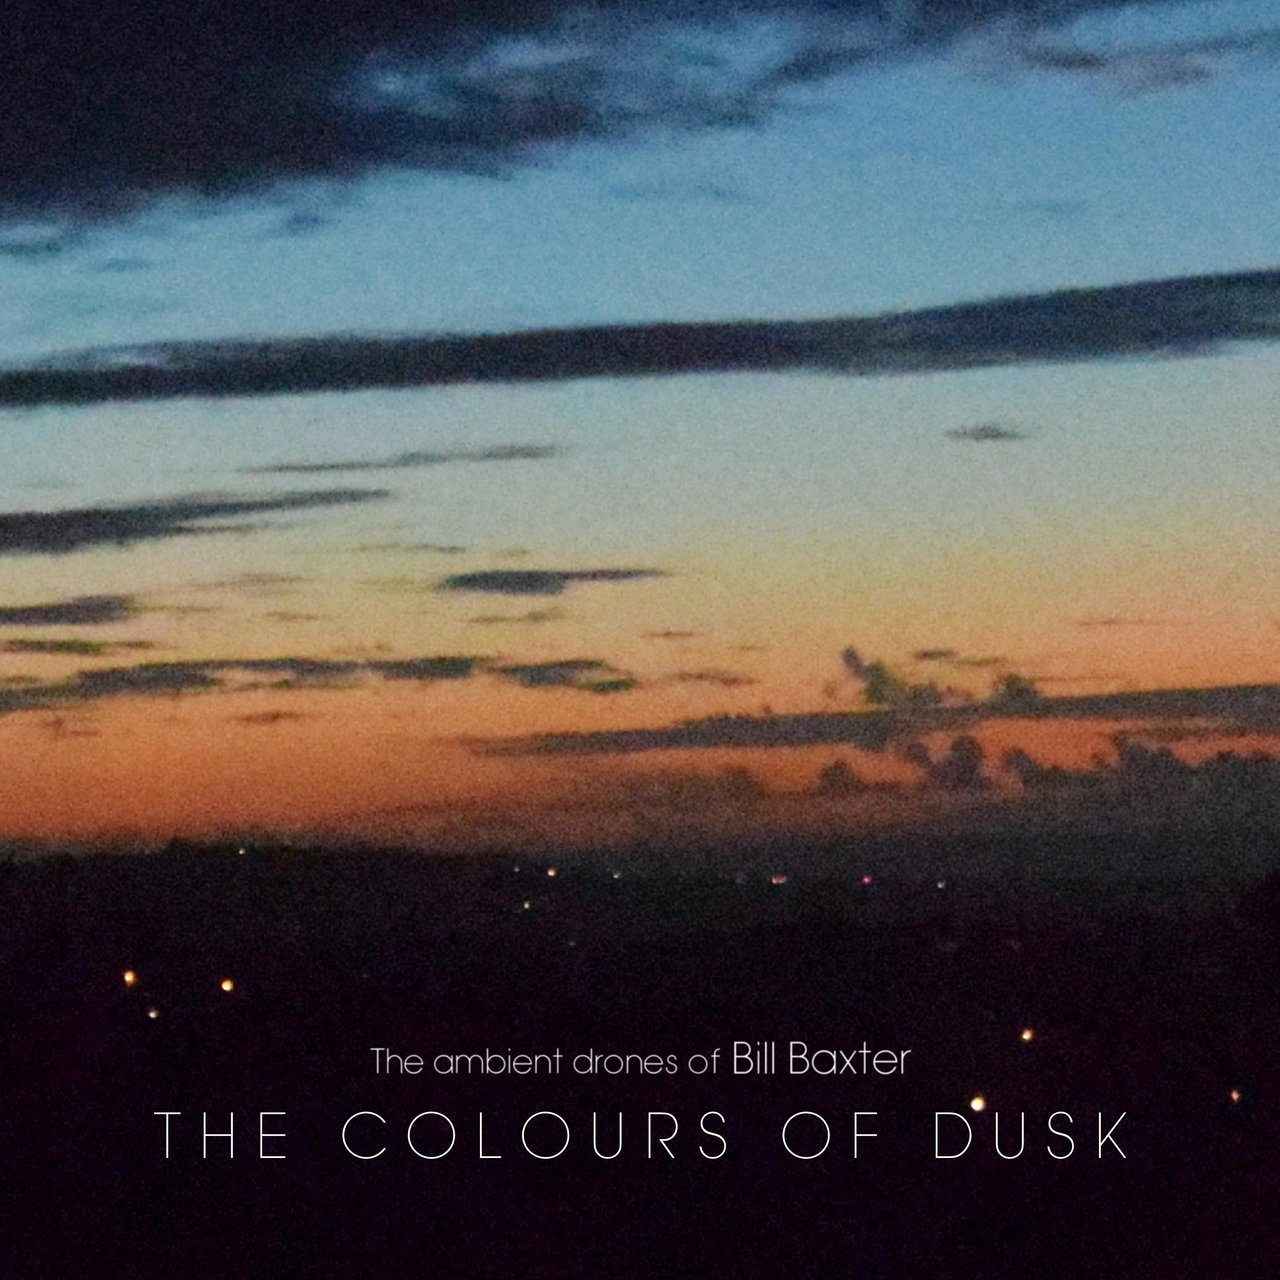 The Colours of Dusk